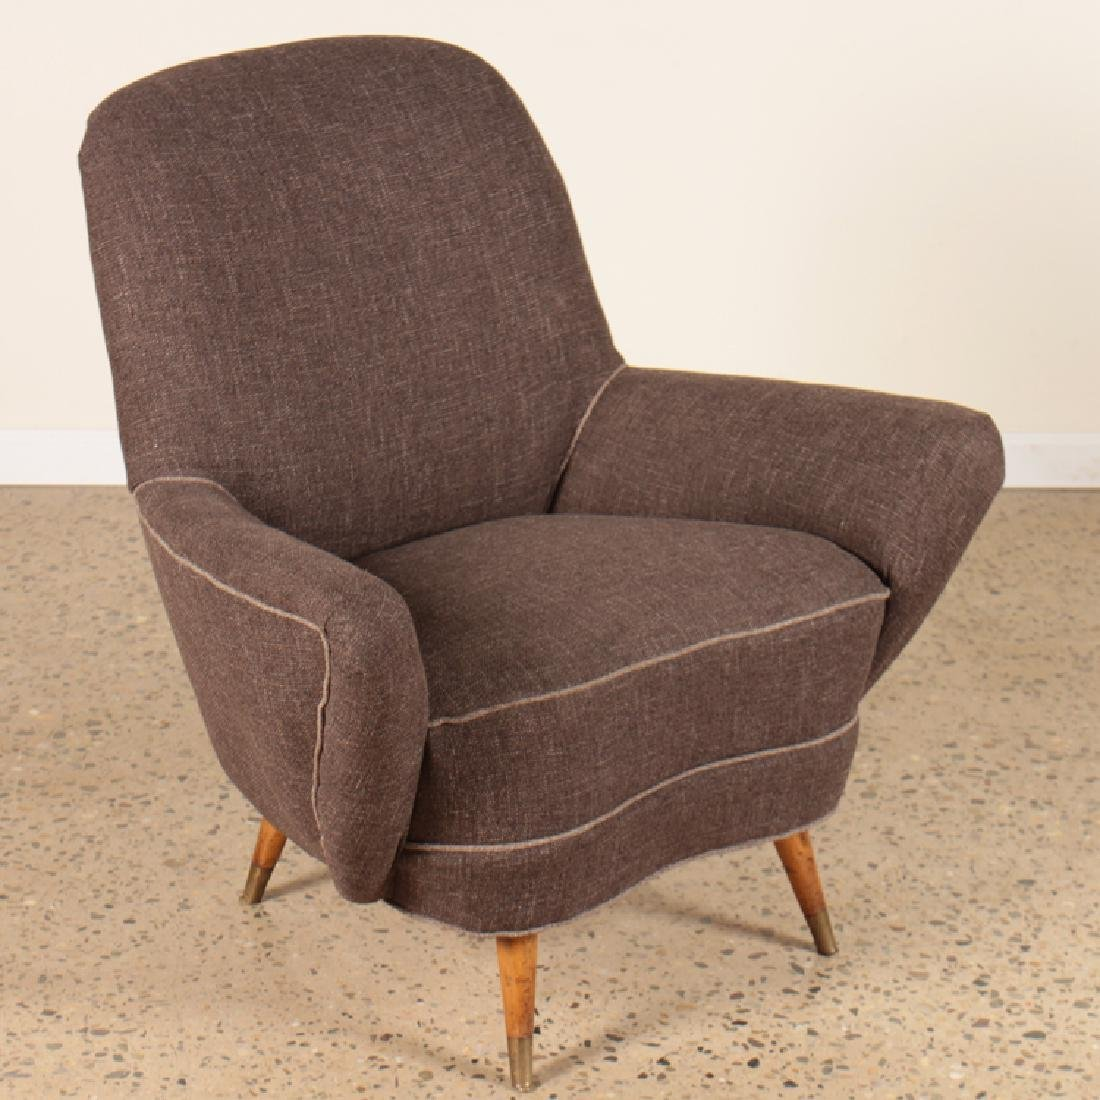 PAIR MID CENTURY MODERN UPHOLSTERED CLUB CHAIRS - 2